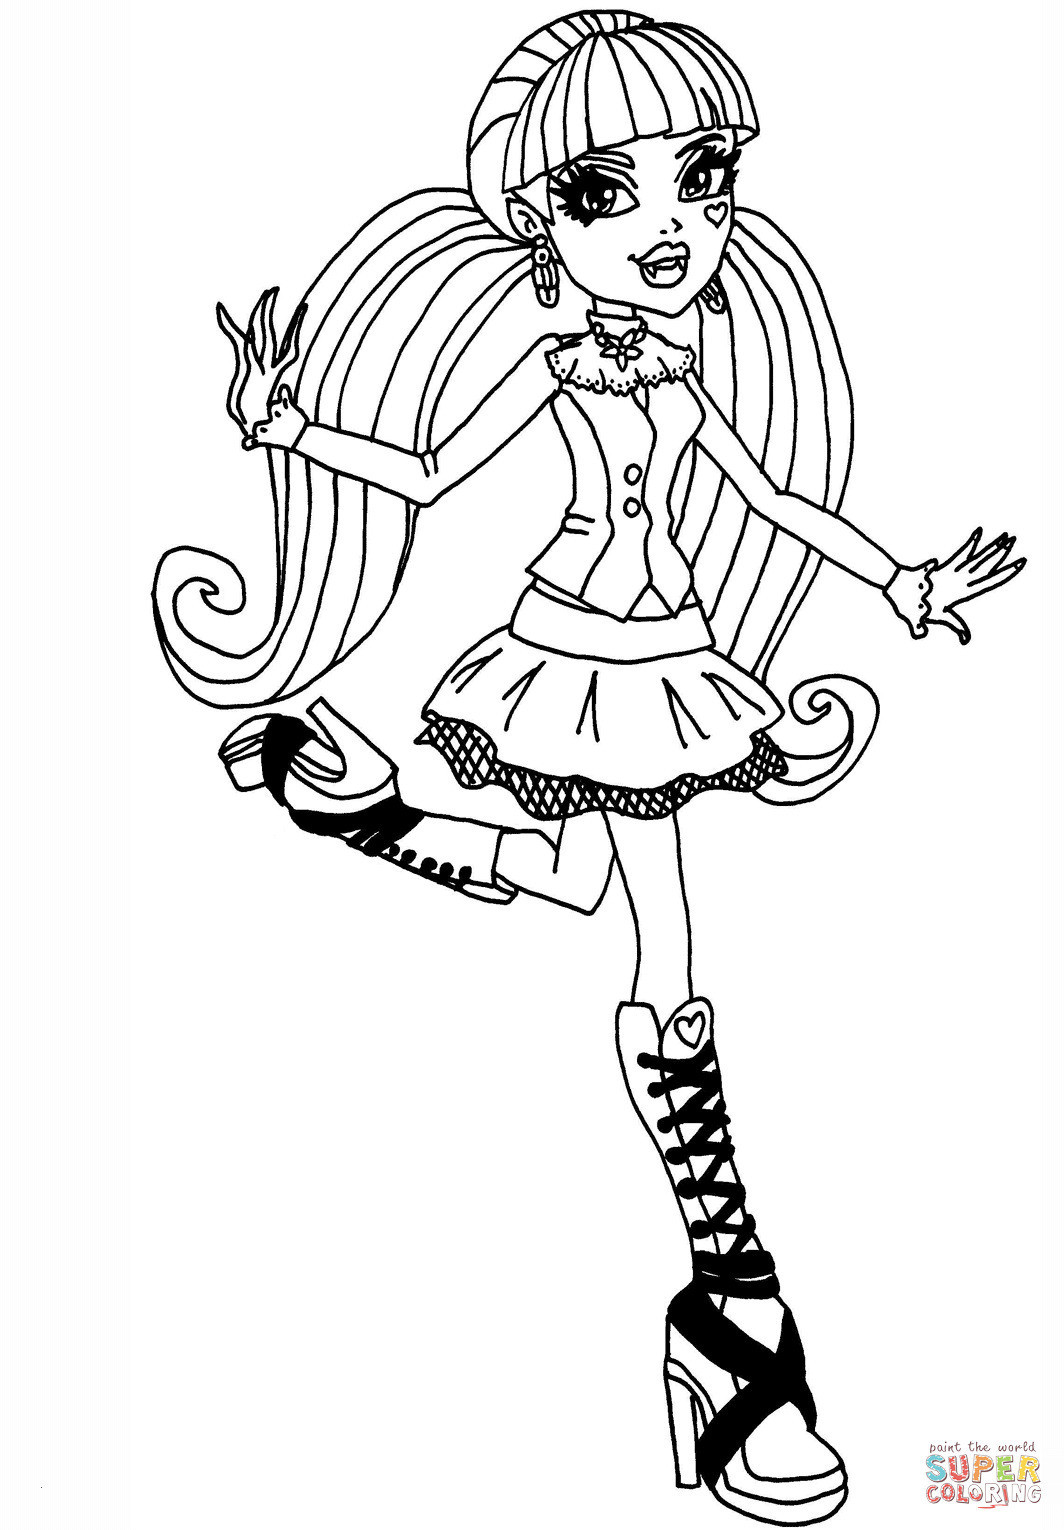 Monster High Ausmalbilder Frisch 38 Monster High Ausmalbilder Draculaura Scoredatscore Inspirierend Fotos